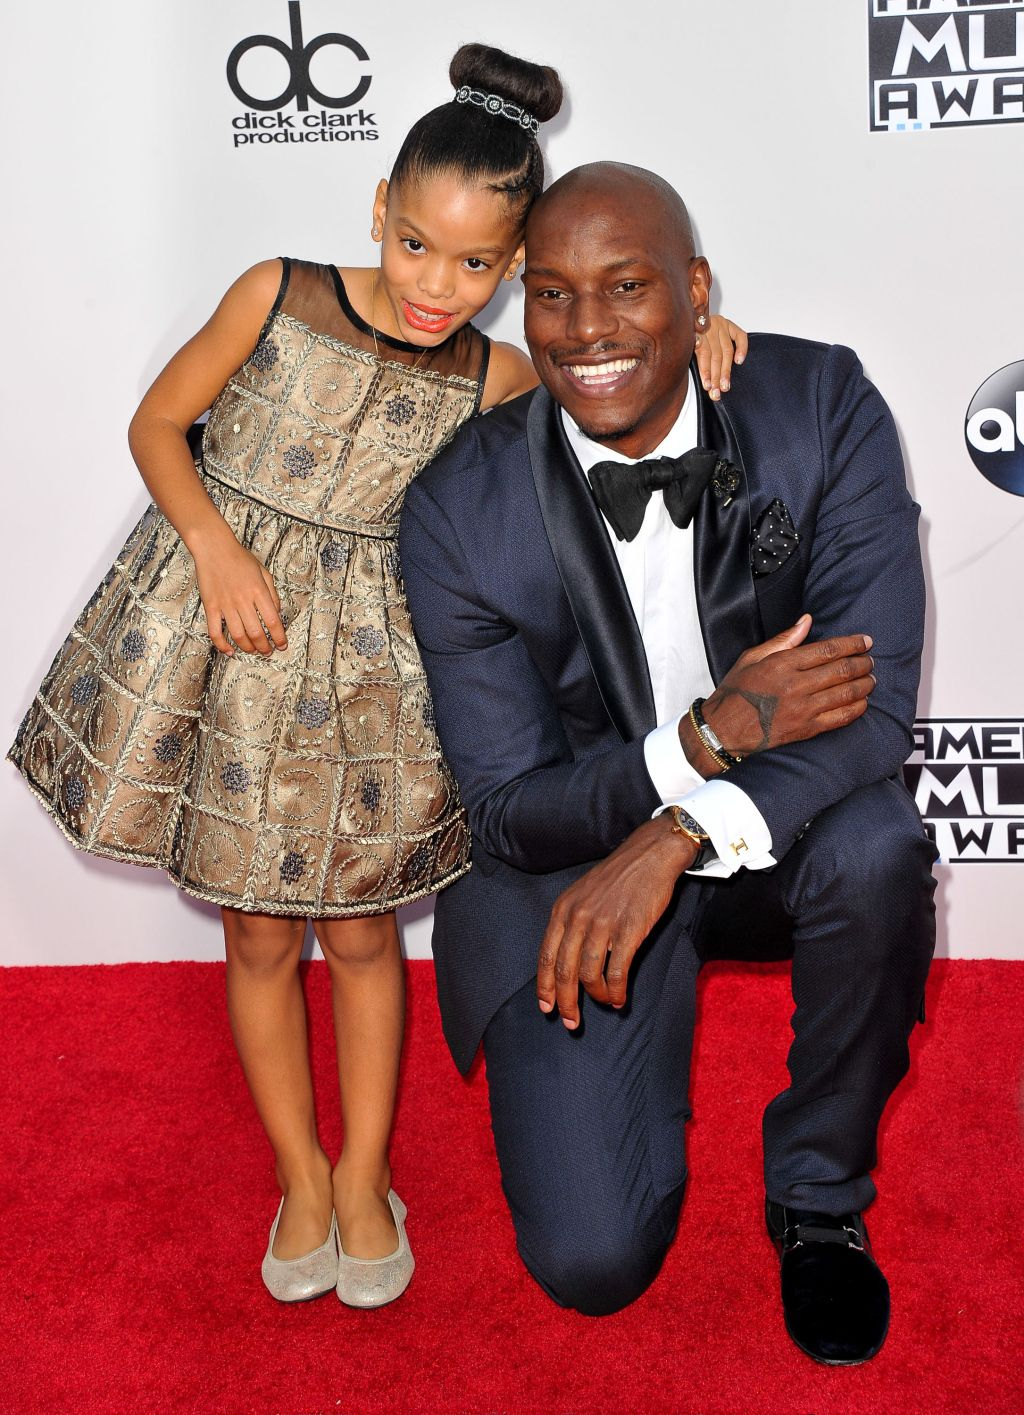 If there's one eight-year old who shouldn't worry about what will be under the Christmas tree this year, it's Shayla Gibson. During GQ's Men Of The Year party, Tyrese spoke to Entertainment Tonight...